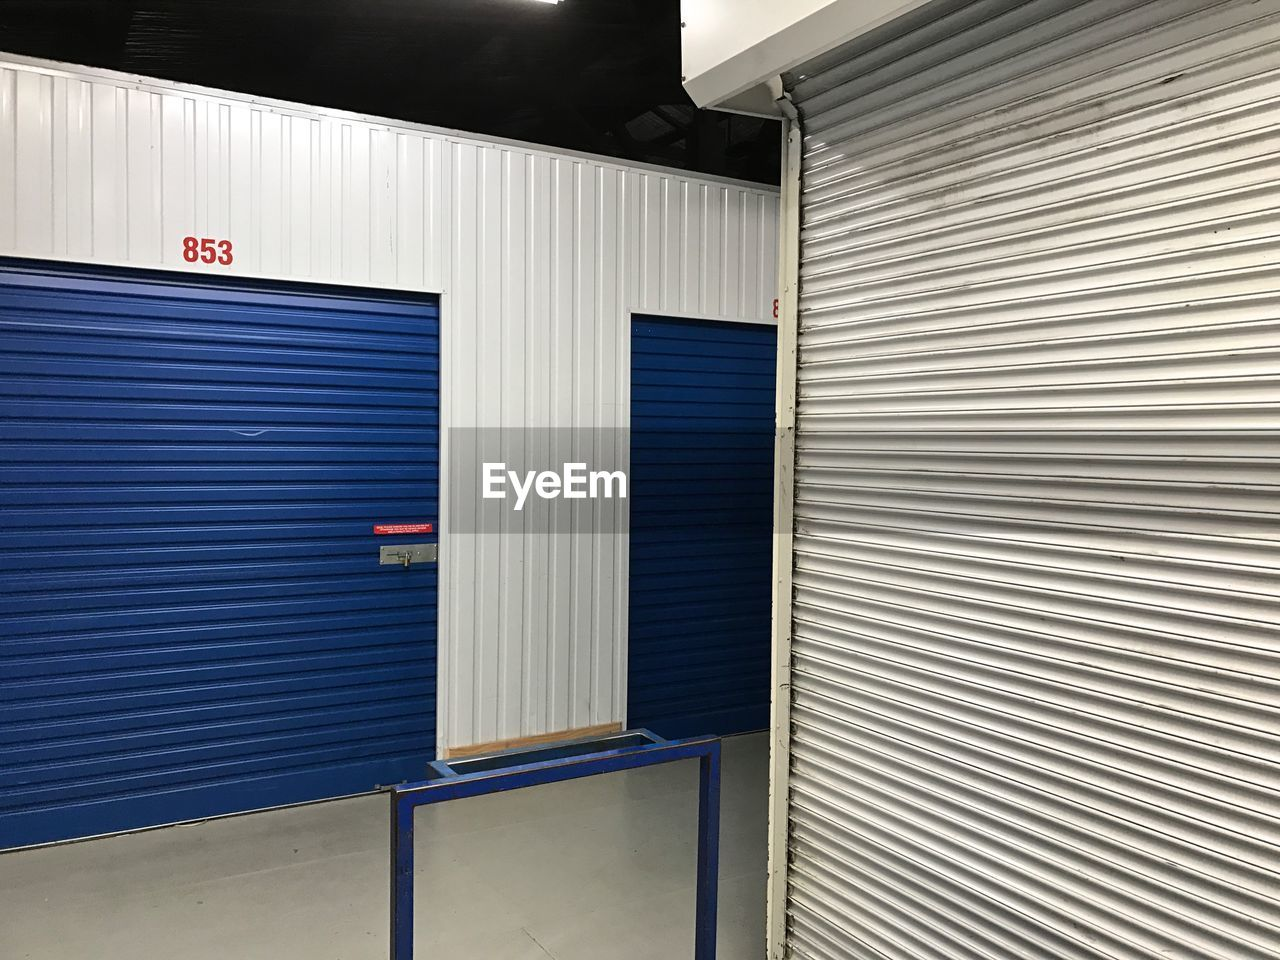 shutter, metal, corrugated iron, no people, built structure, architecture, day, outdoors